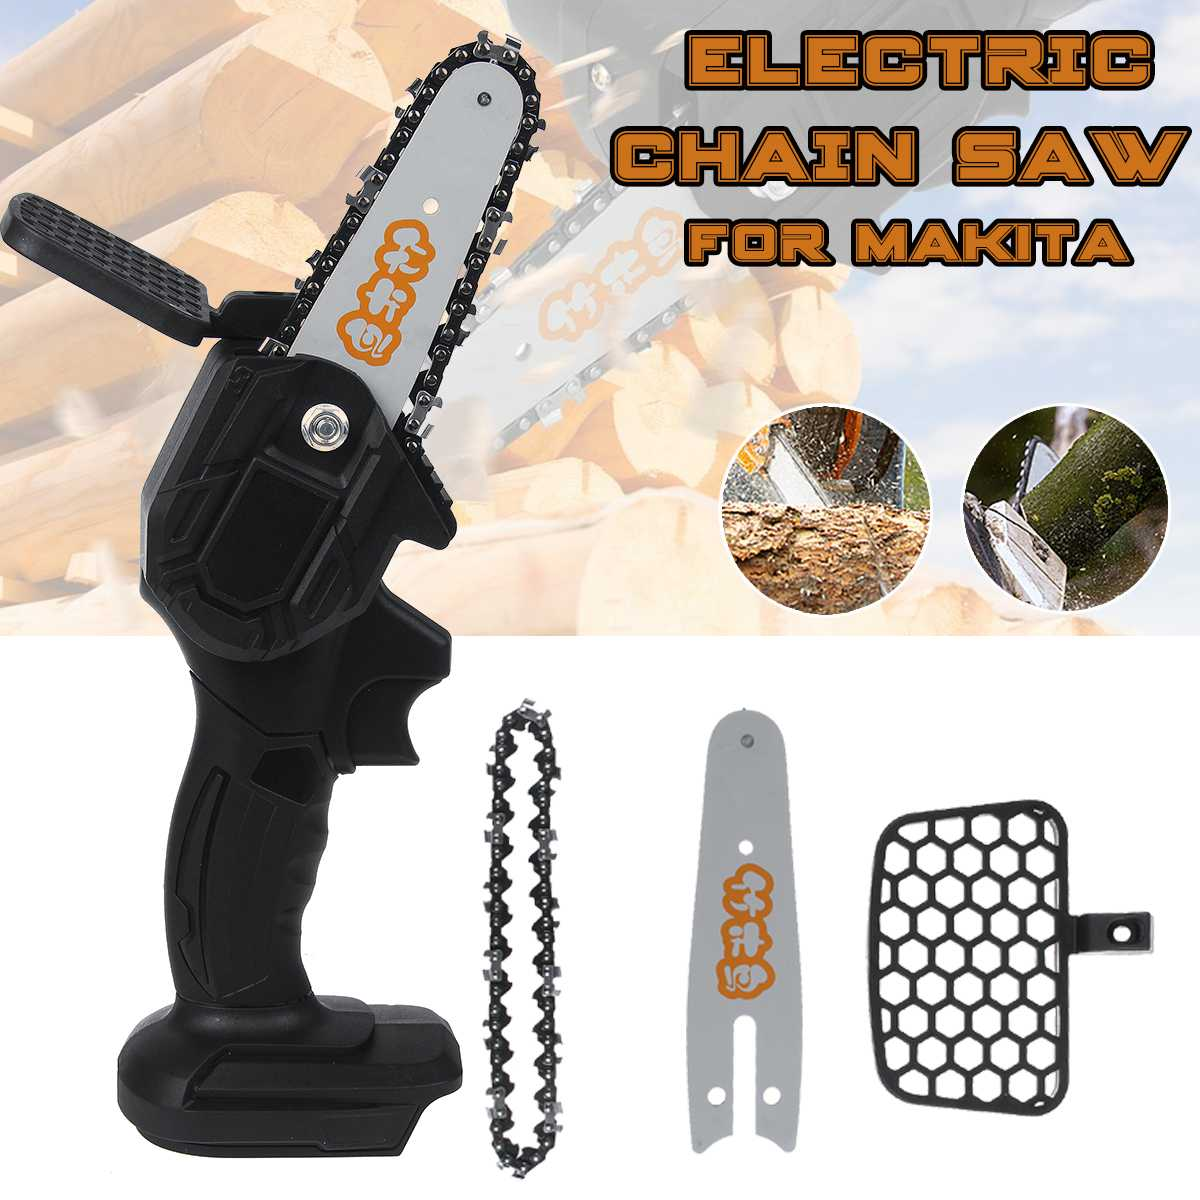 24V Electric Mini Chain Saws Pruning ChainSaw Cordless Garden Tree Logging Trimming Saw For Wood Cutting for Makita Battery